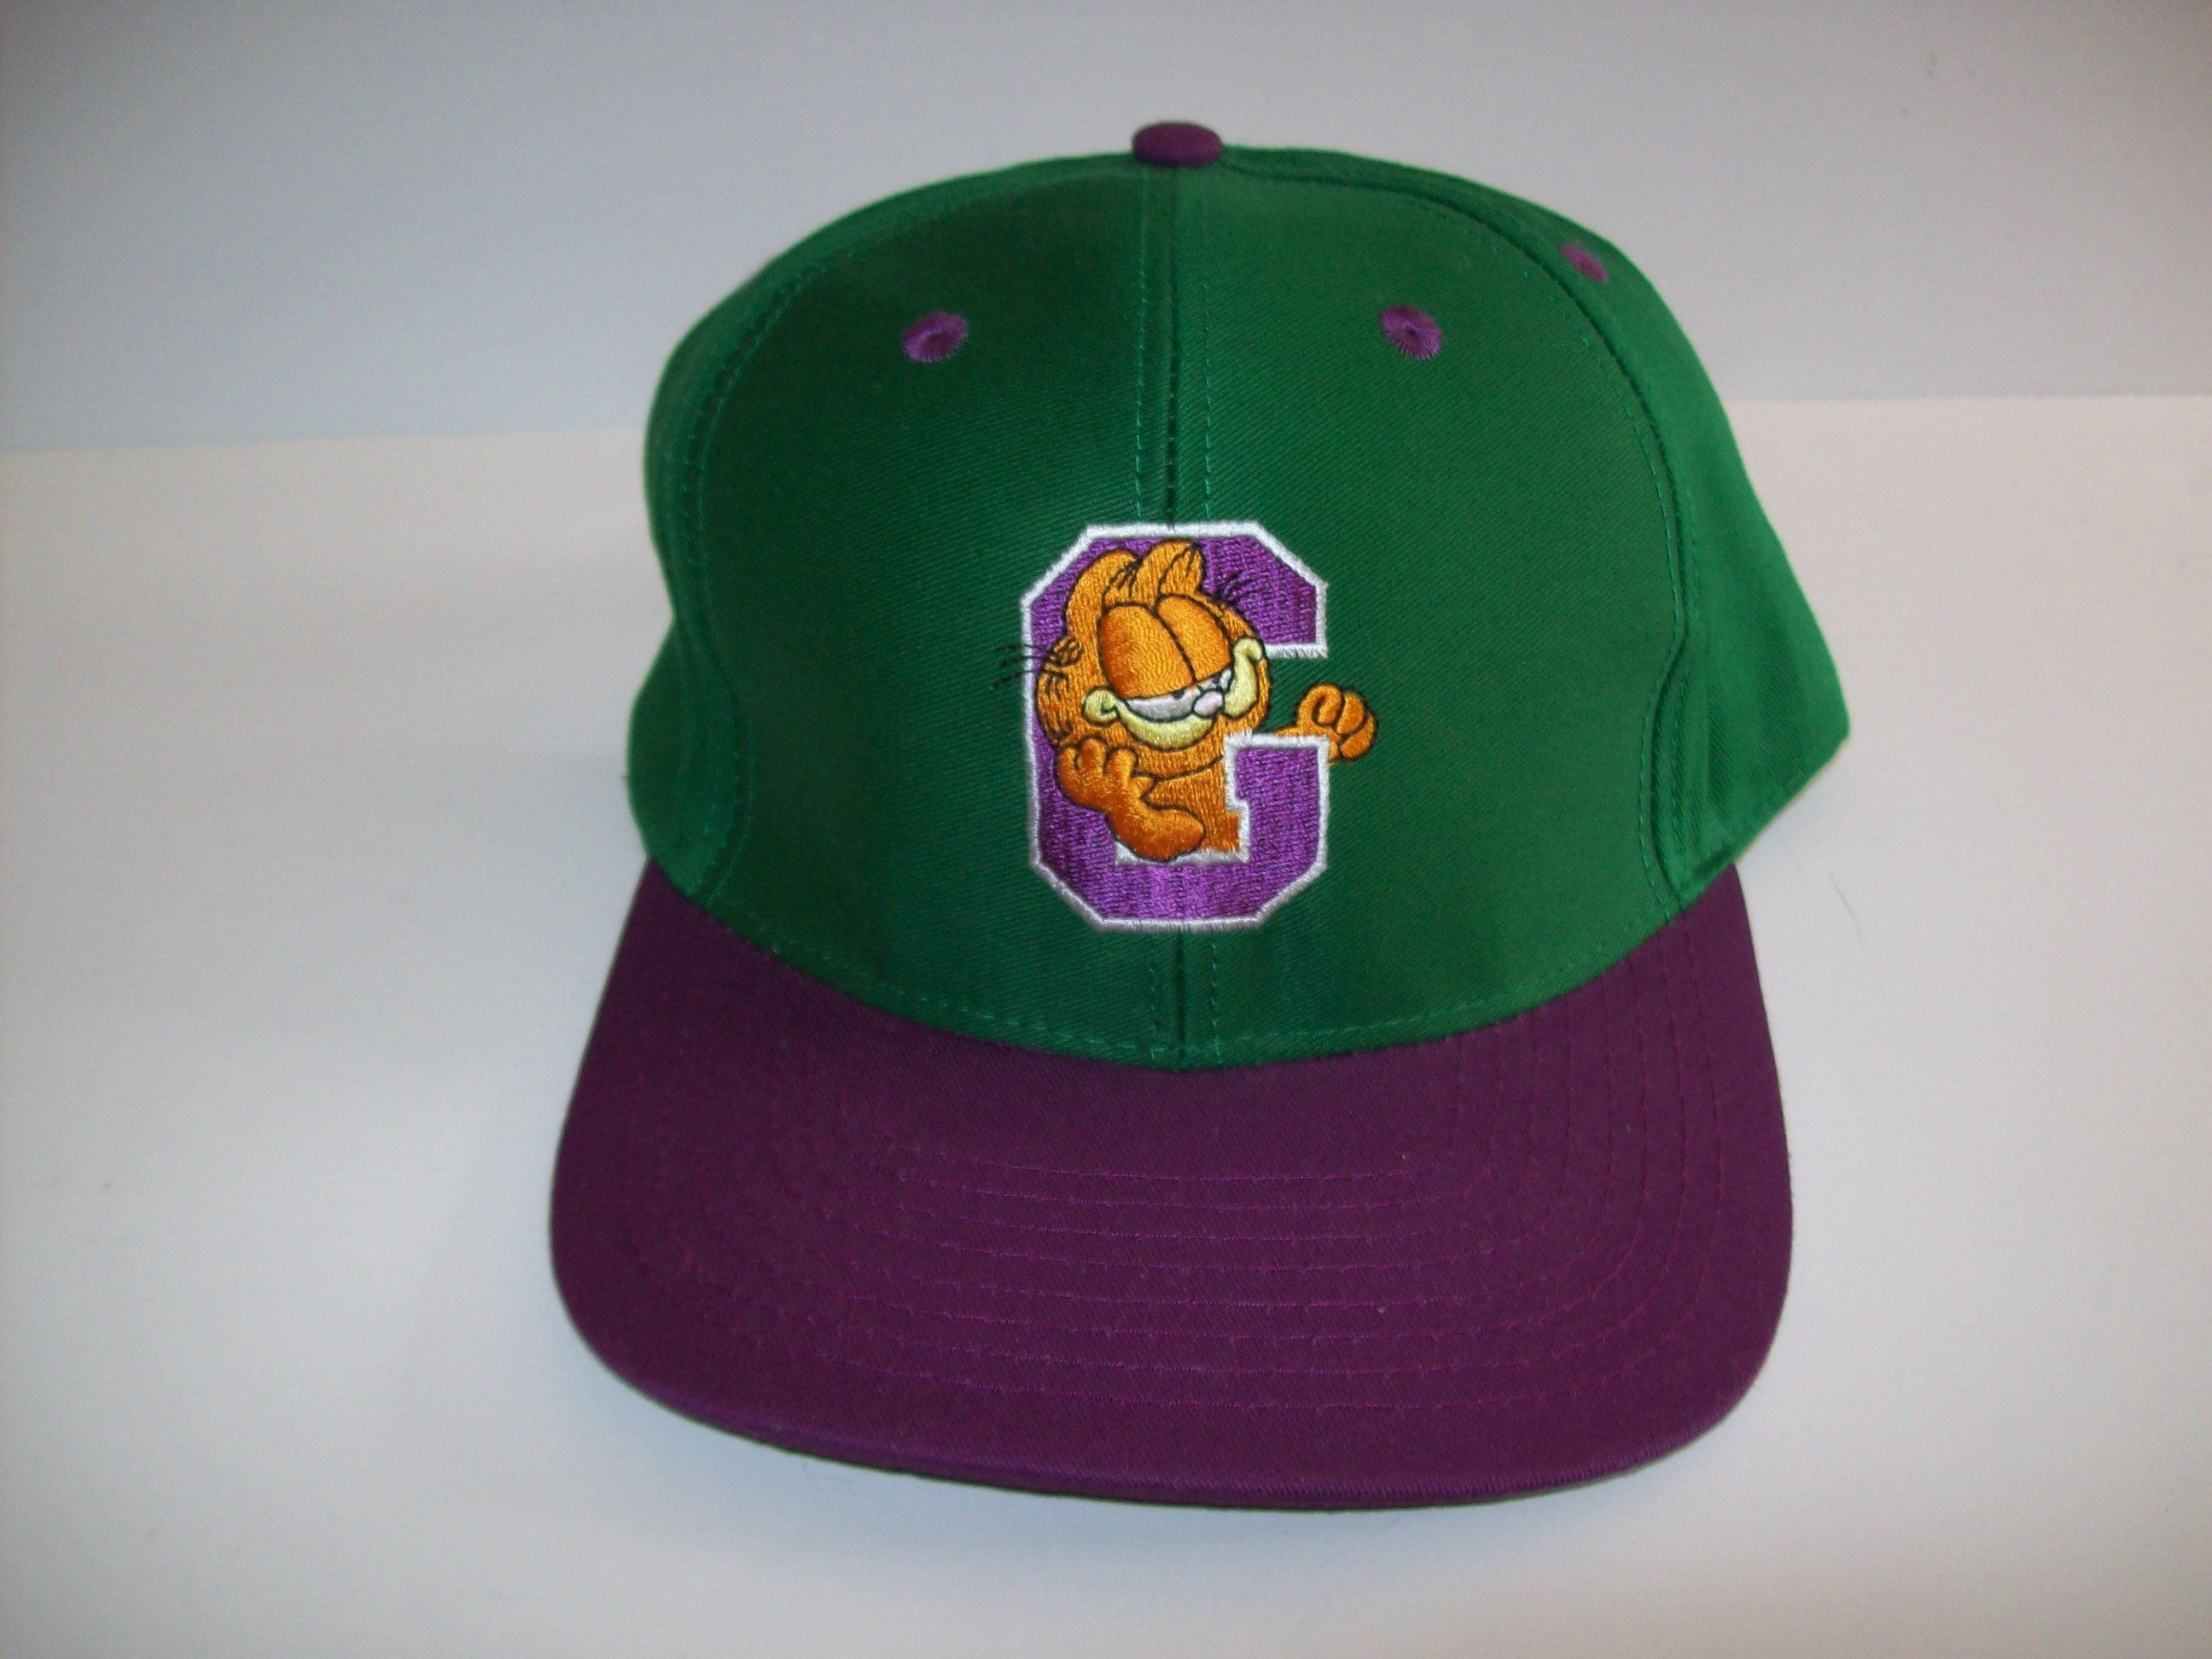 Garfield Green Baseball Cap Hat - Simpy Garfield